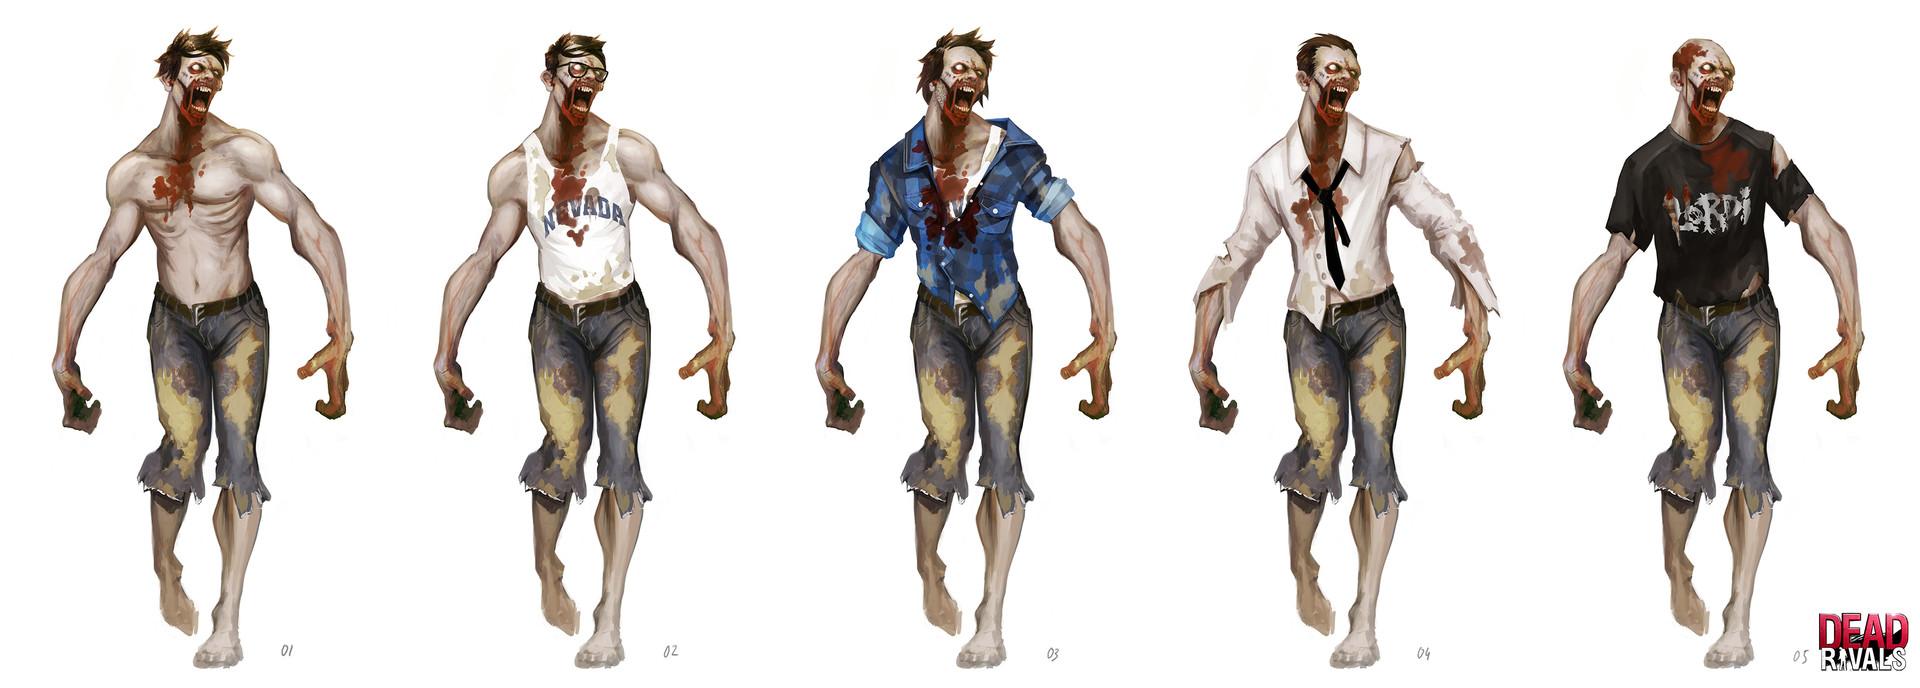 Alexandre chaudret zombiemmo character zombie redesign04